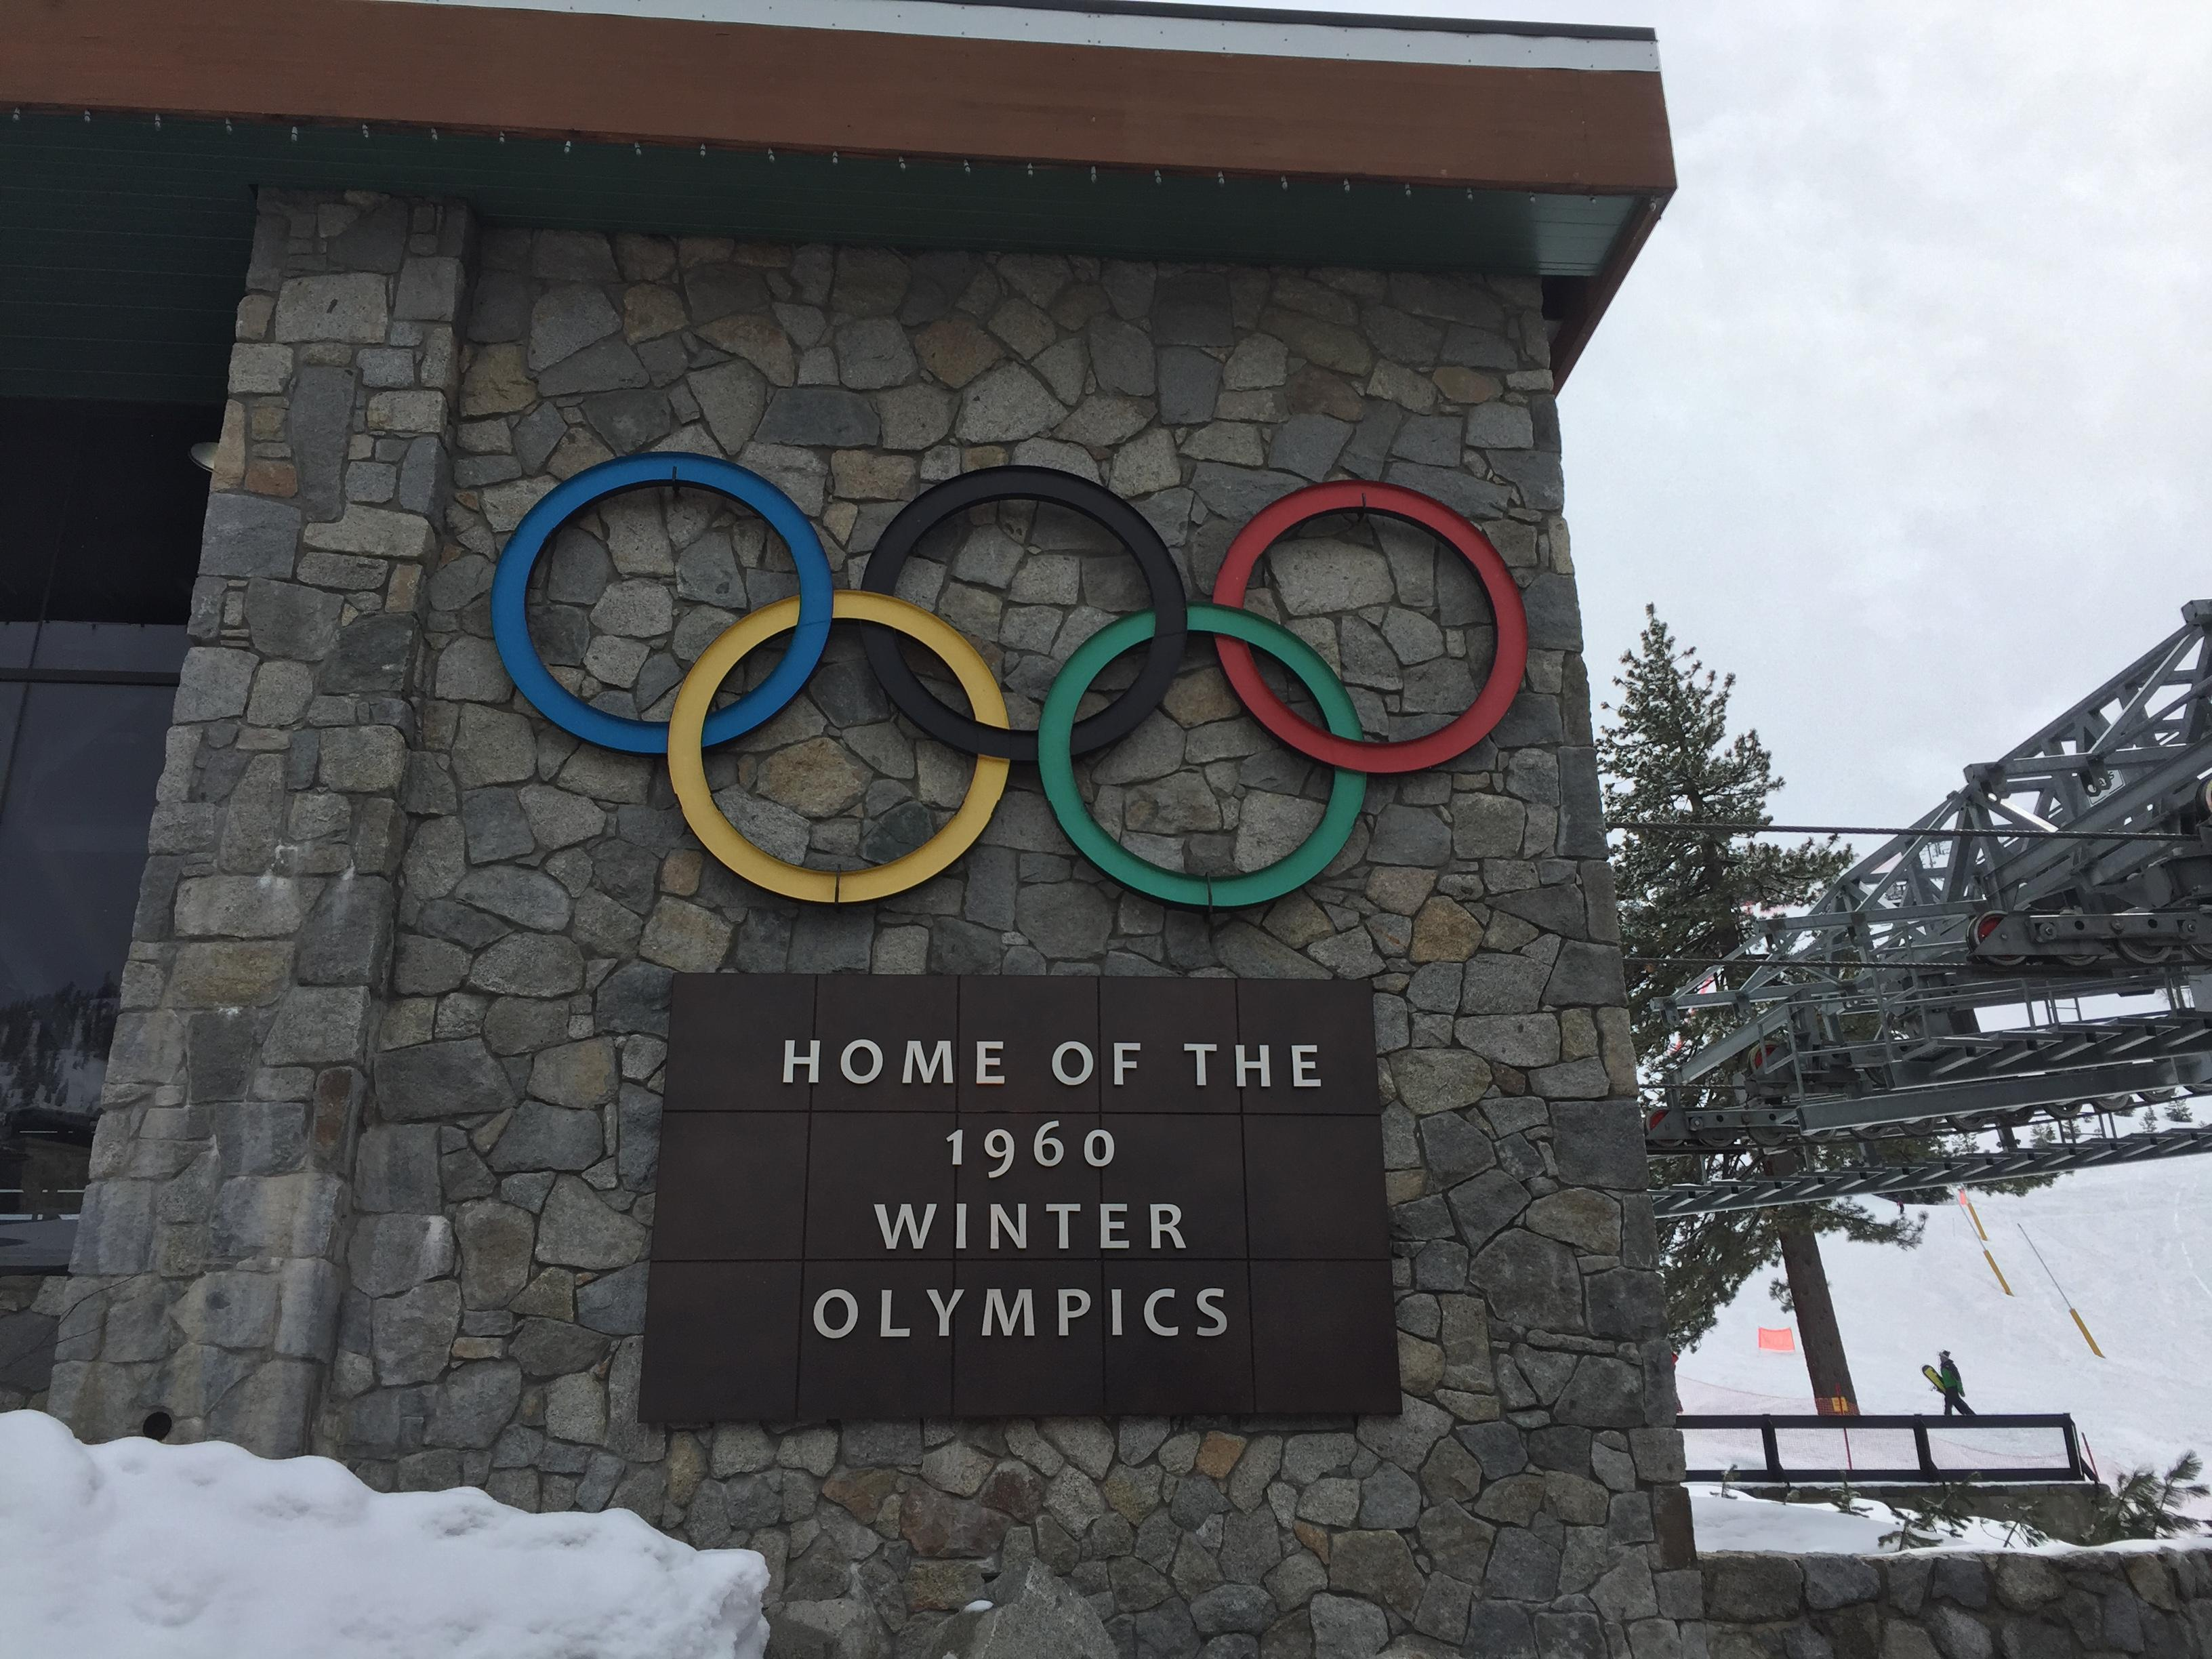 If you're a skier or snowboarder, Squaw Valley is famous for hosting hte 1960 Winter Olympics.